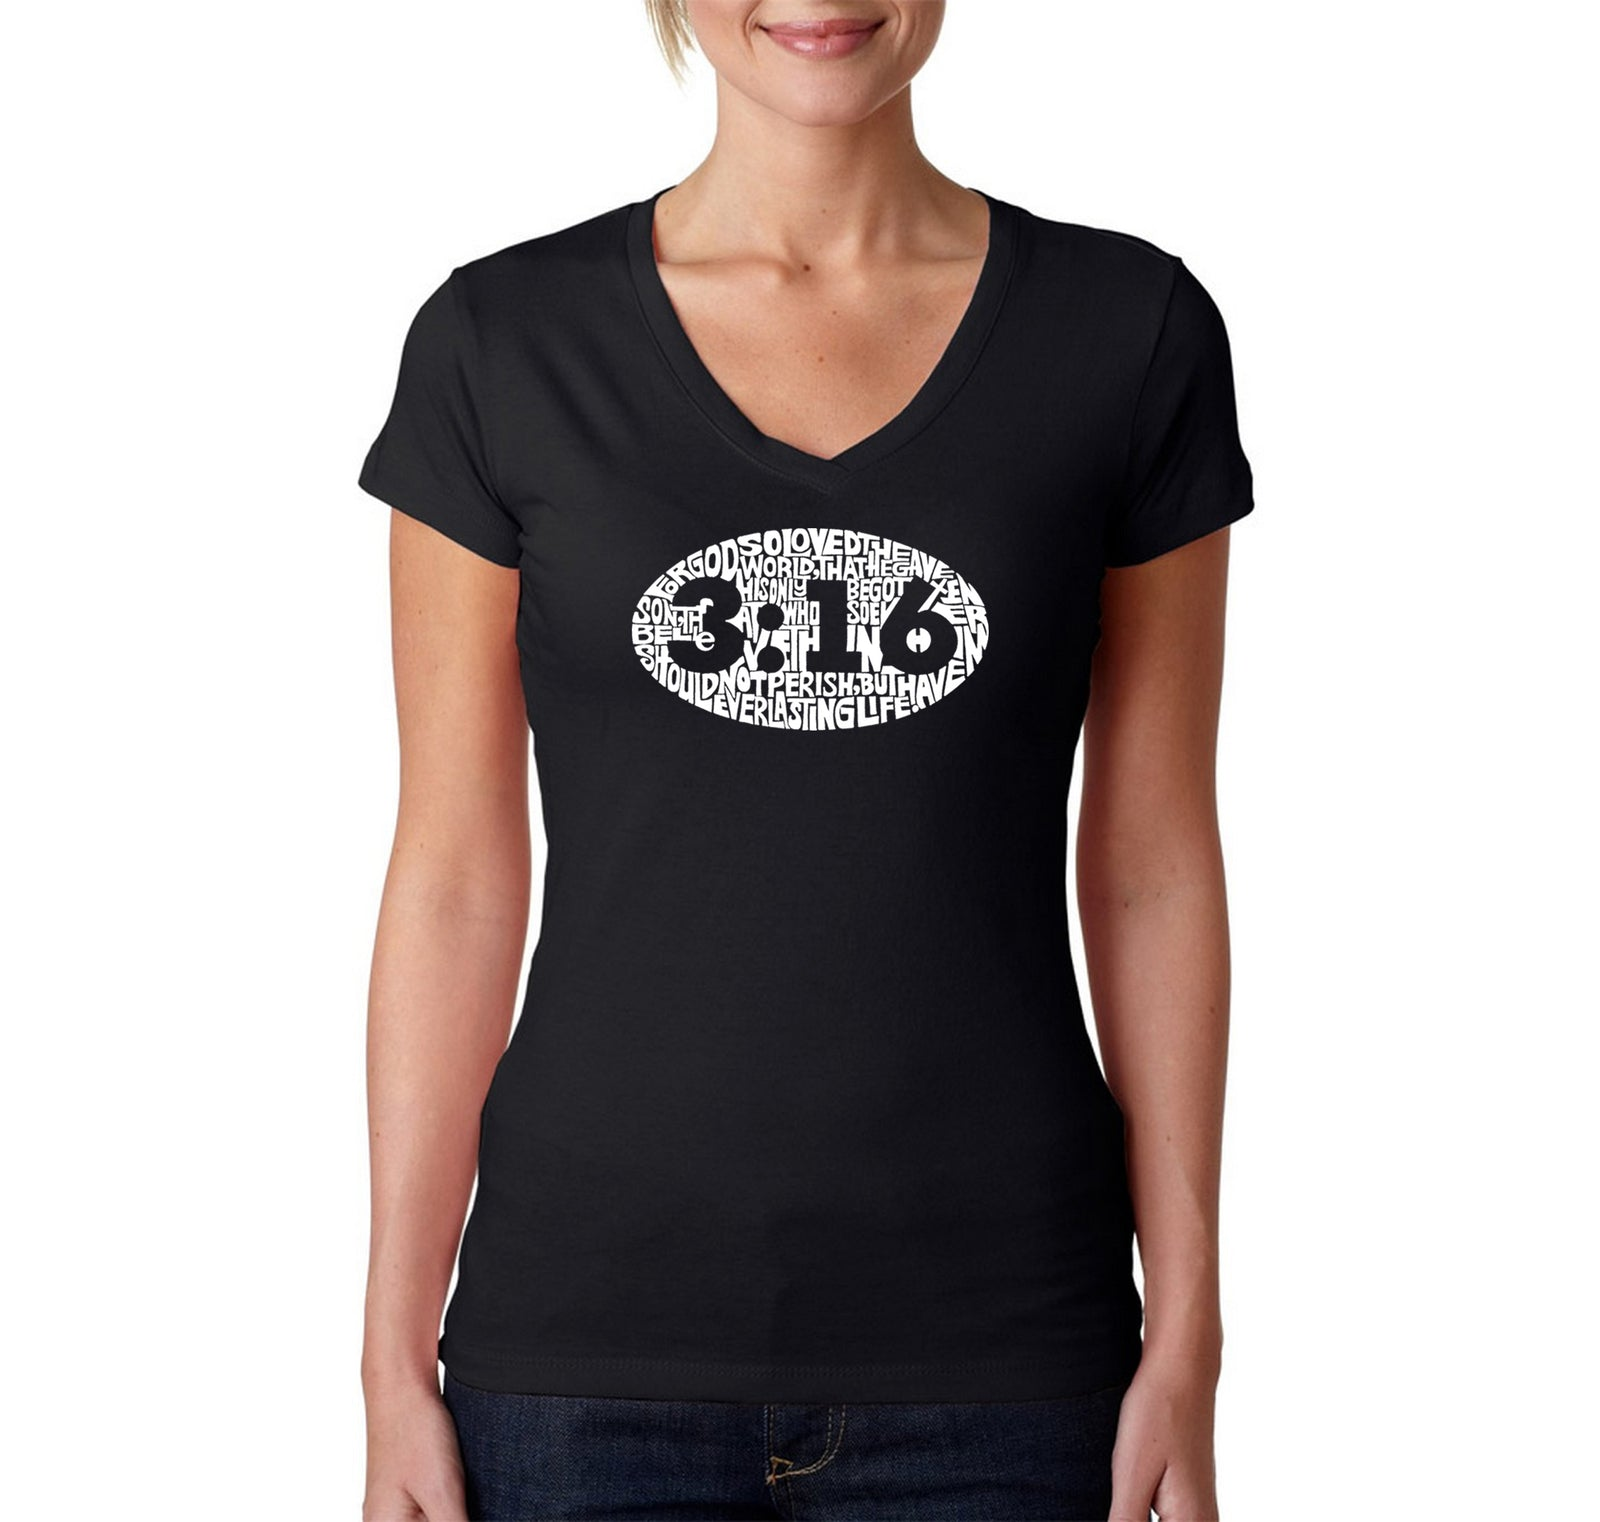 Women's V-Neck T-Shirt - John 3:16